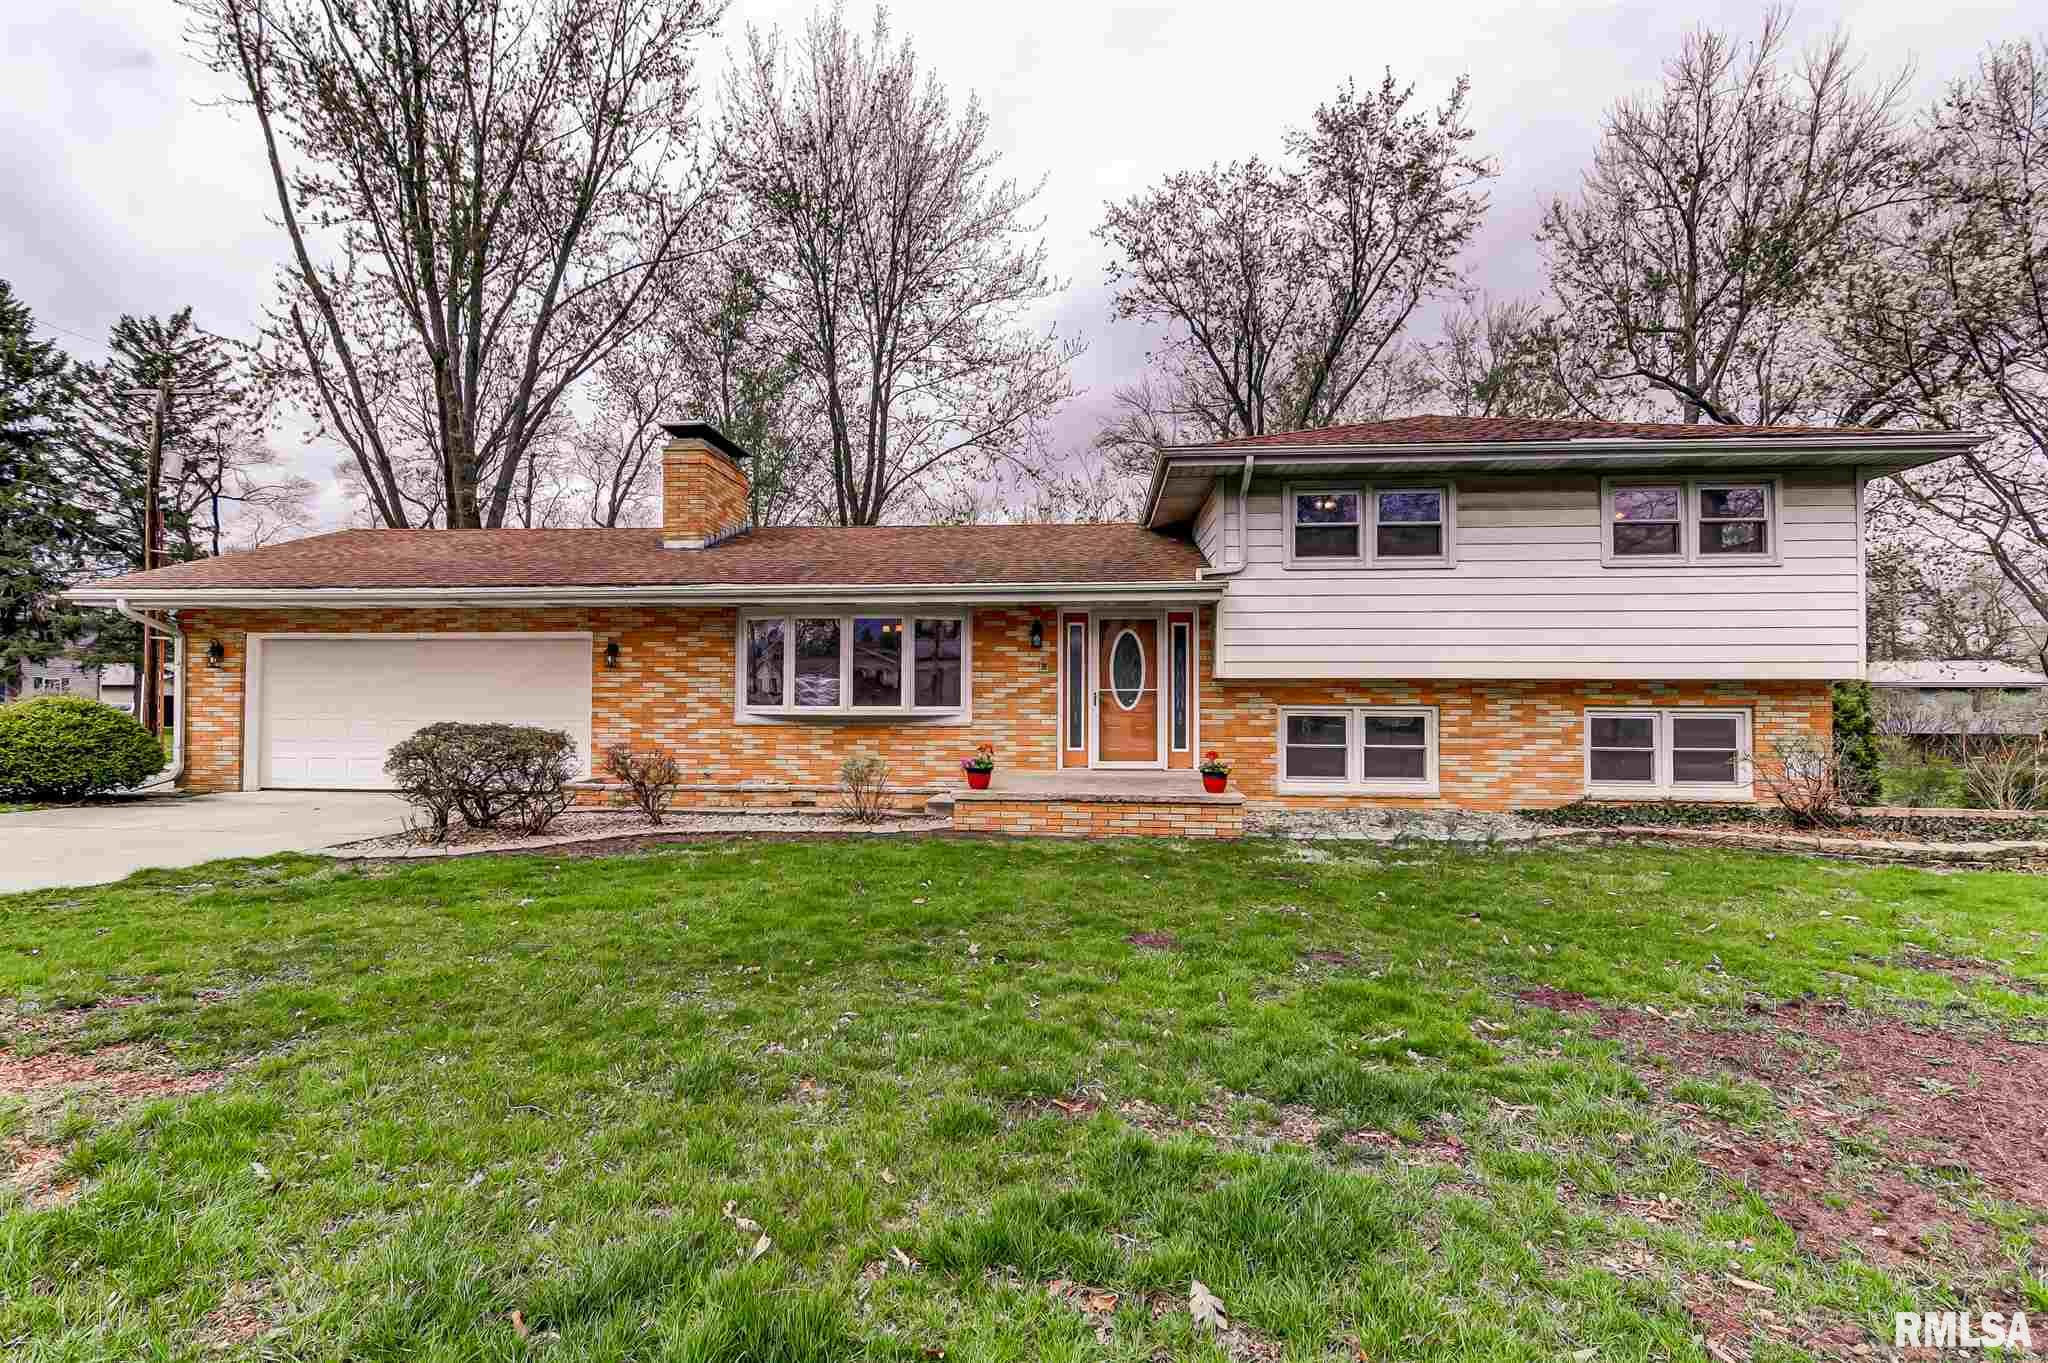 161 W Raylots Property Photo - Spaulding, IL real estate listing